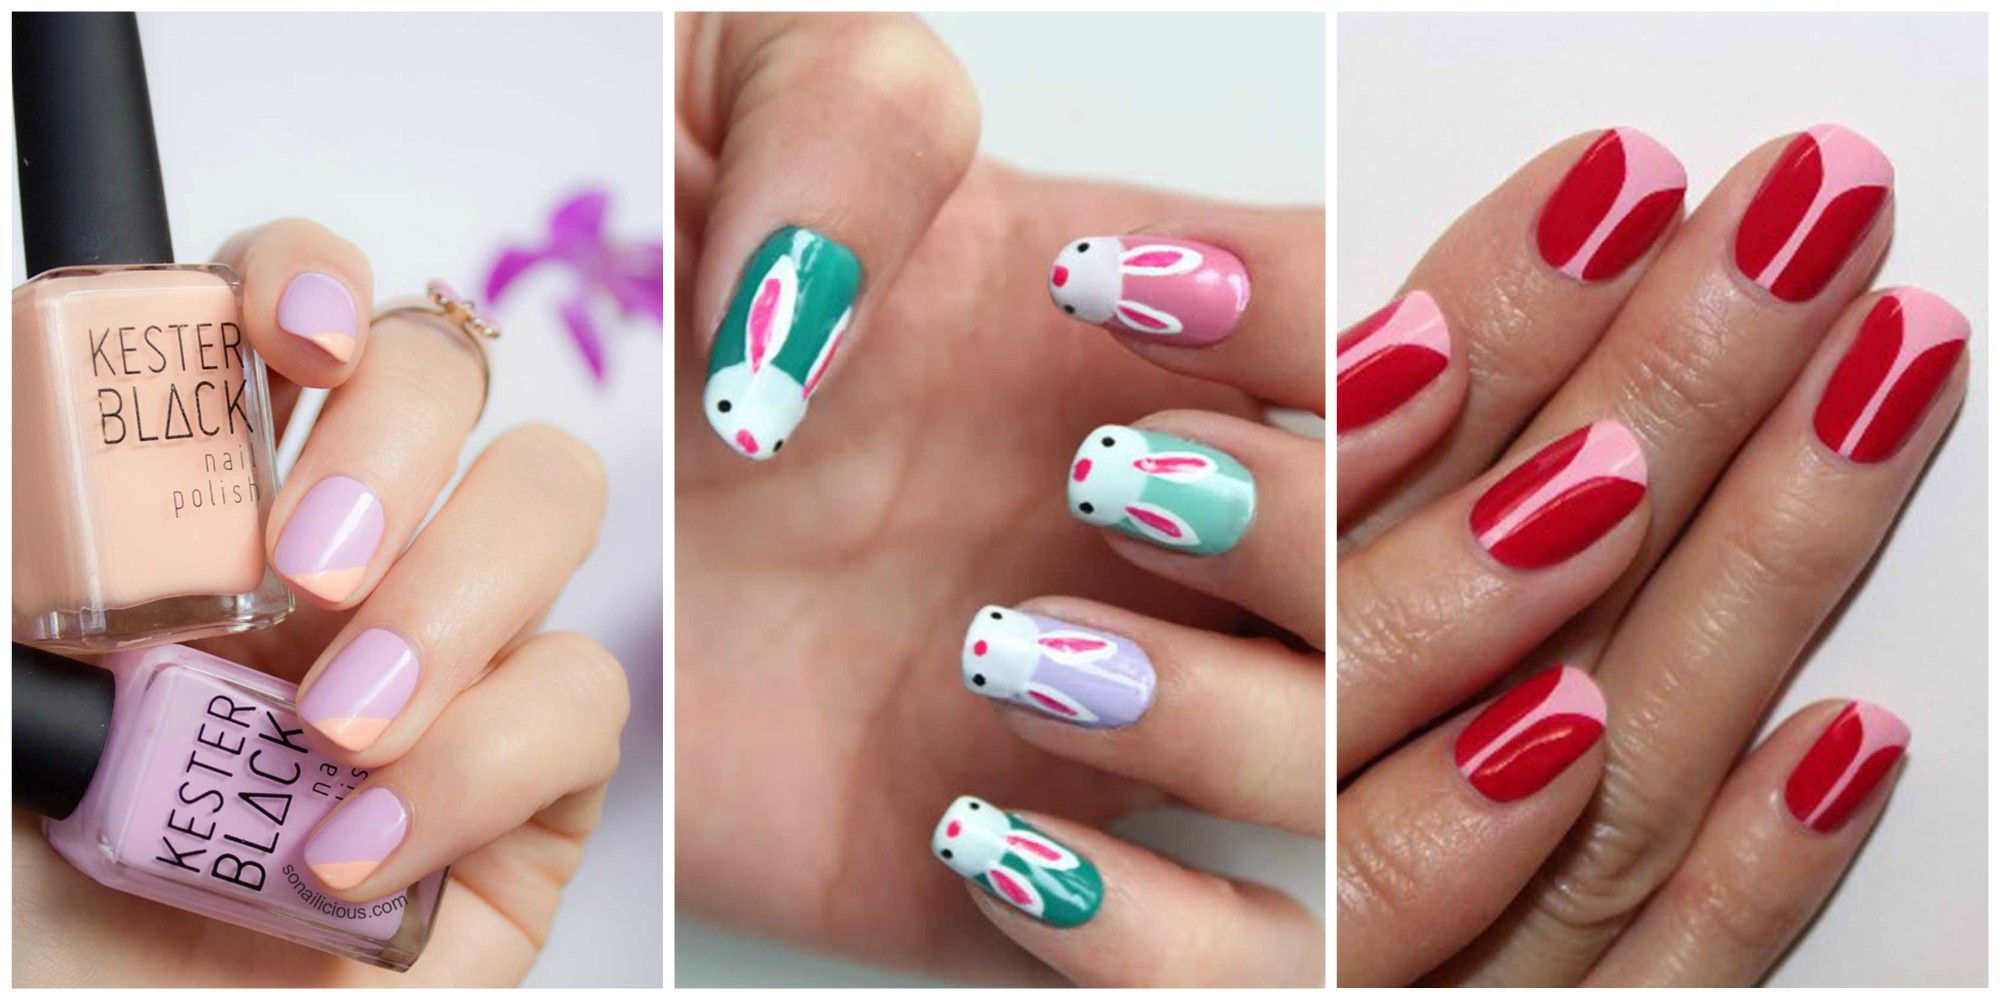 easter nail designs & 16 Cute Easter Nail Designs - Best Easter Nail Art Ideas